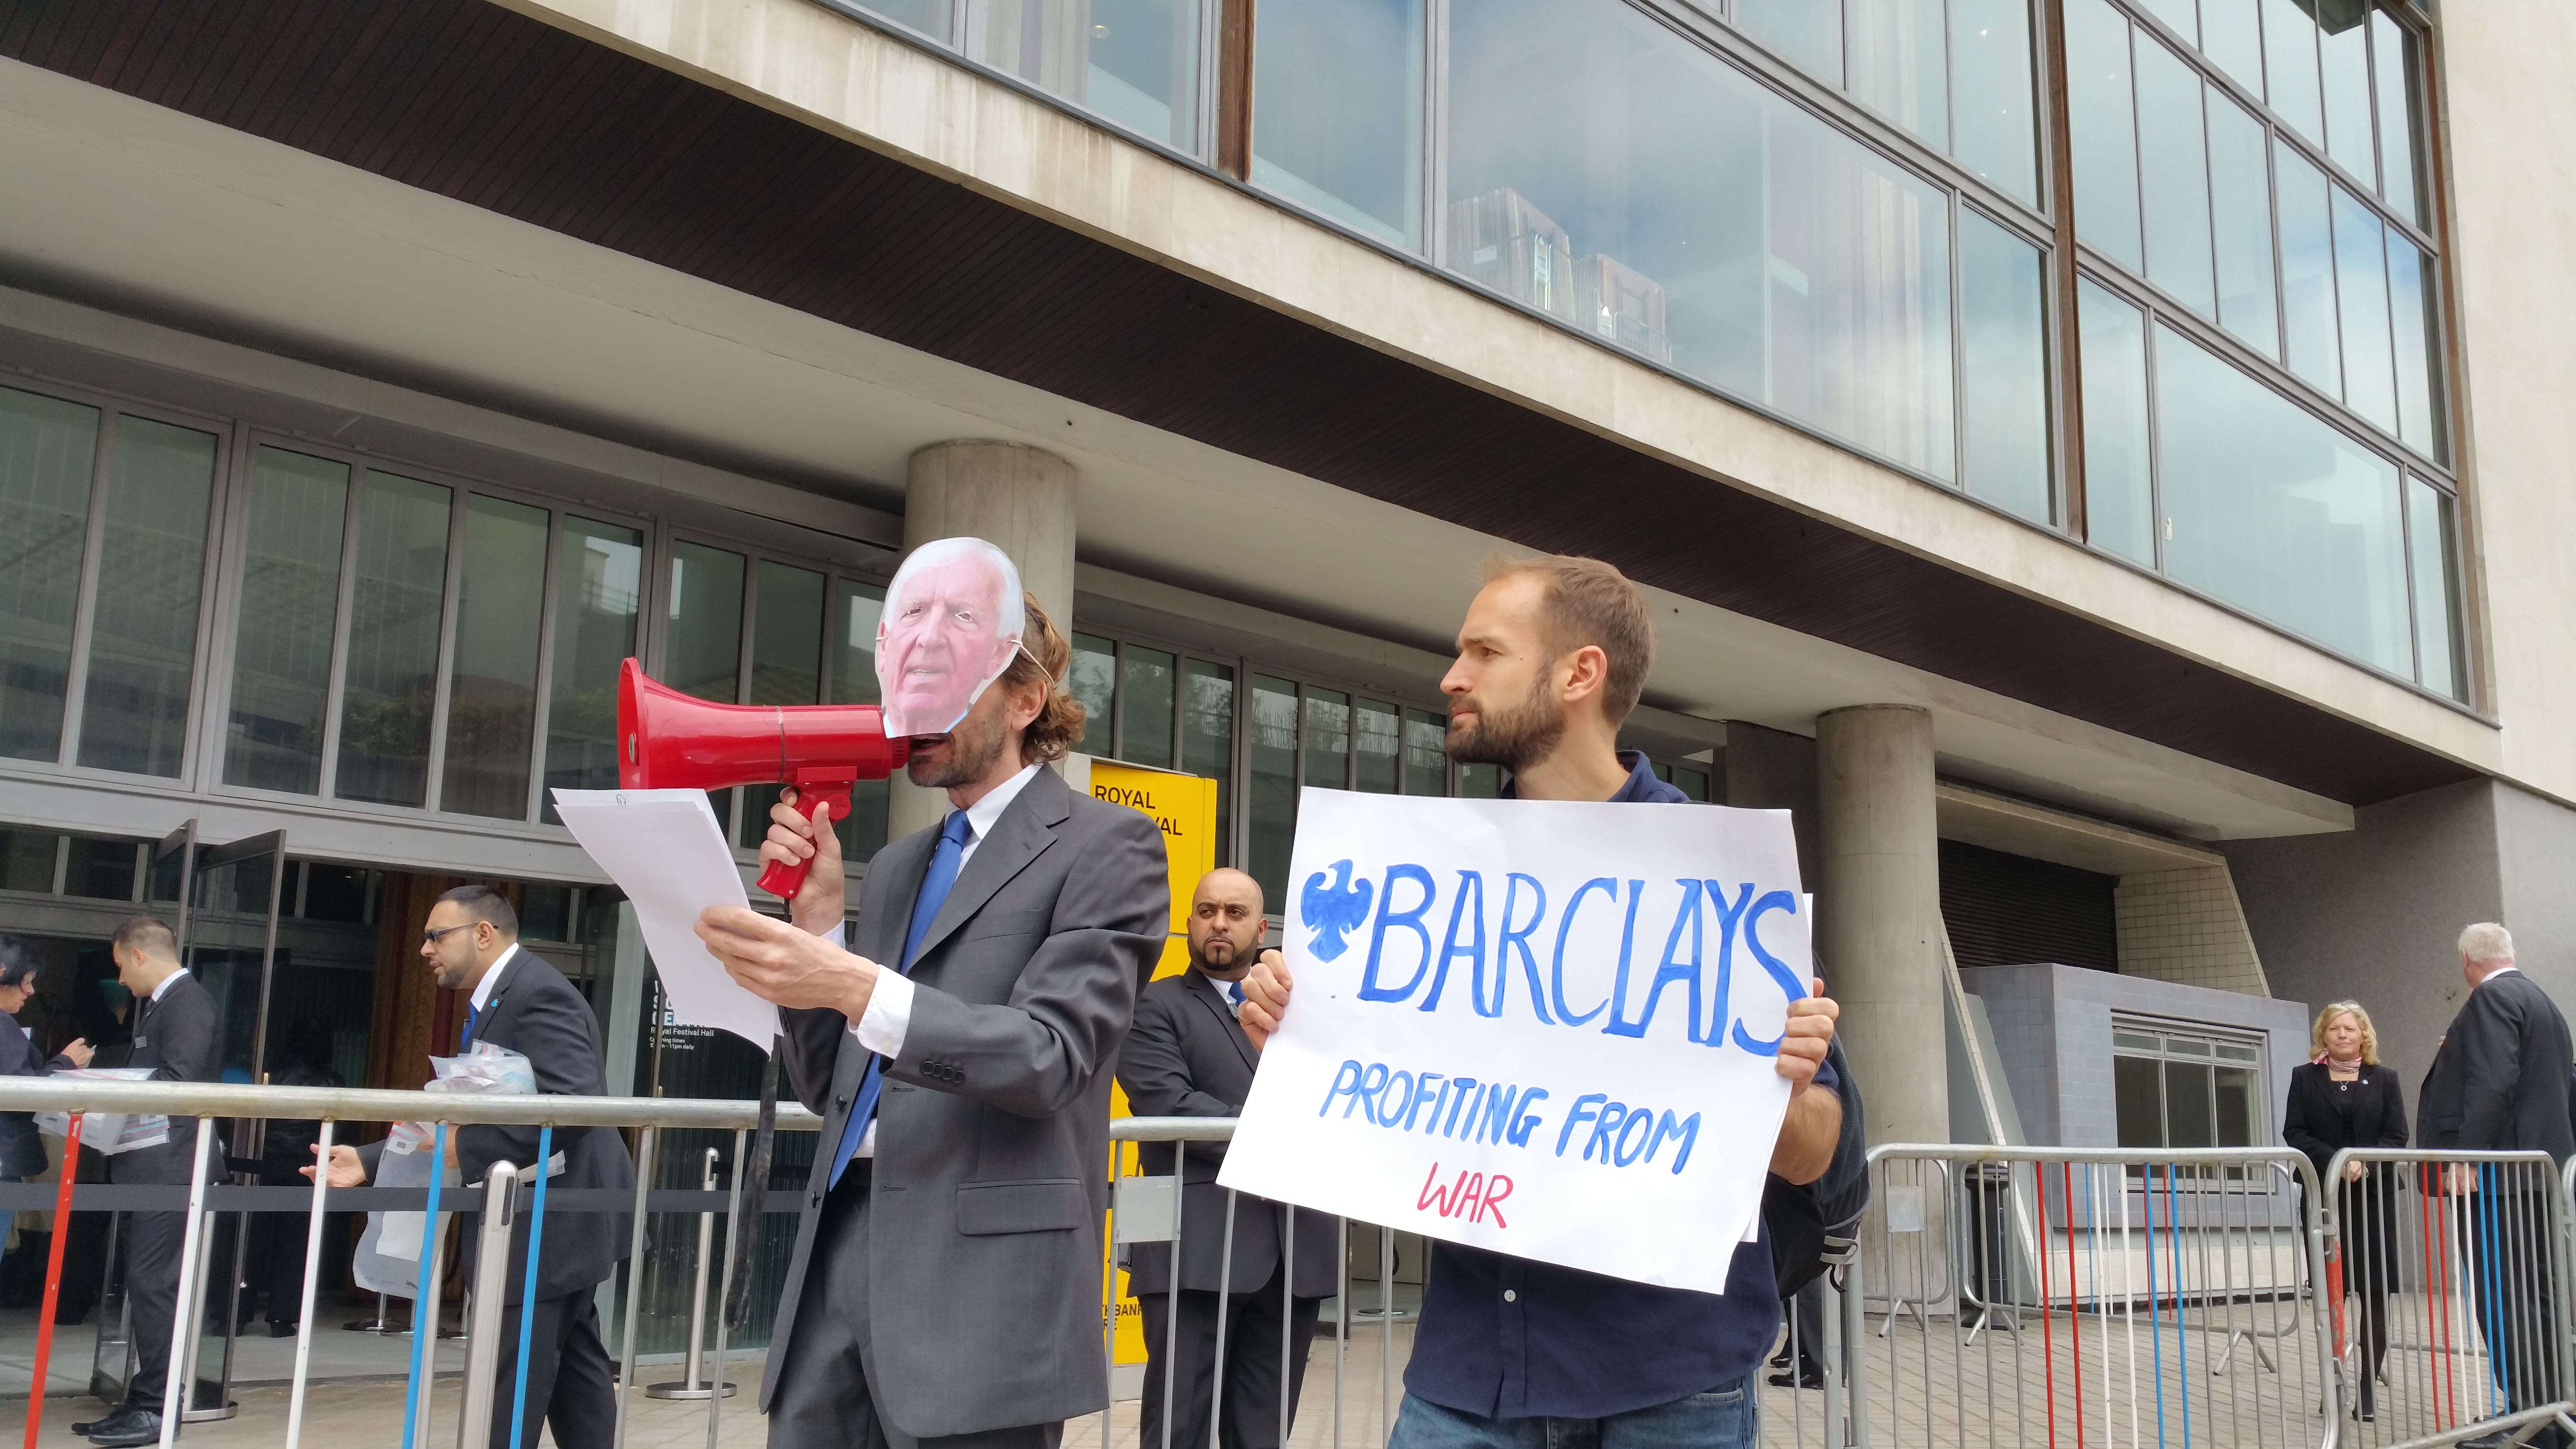 An activist reads out an alternative chairman's speech outside the Barclays AGM